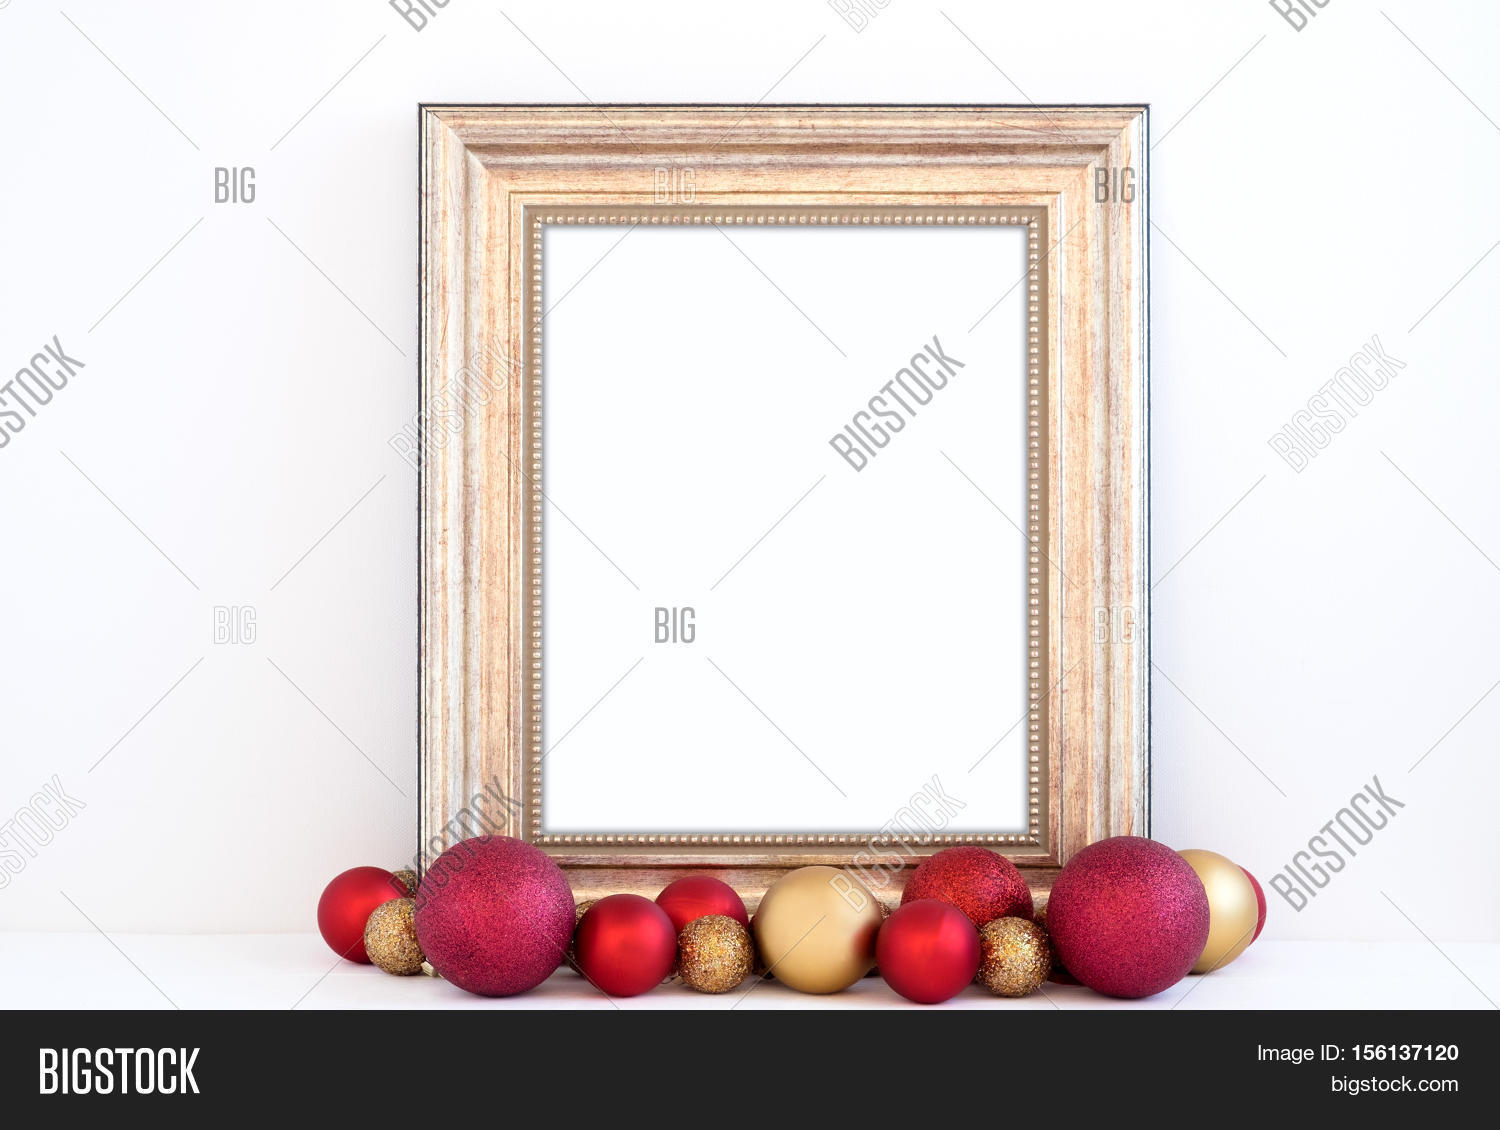 3dcead24c1b1 Christmas styled mockup portrait frame with red and gold baubles overlay  your business message promotion headline